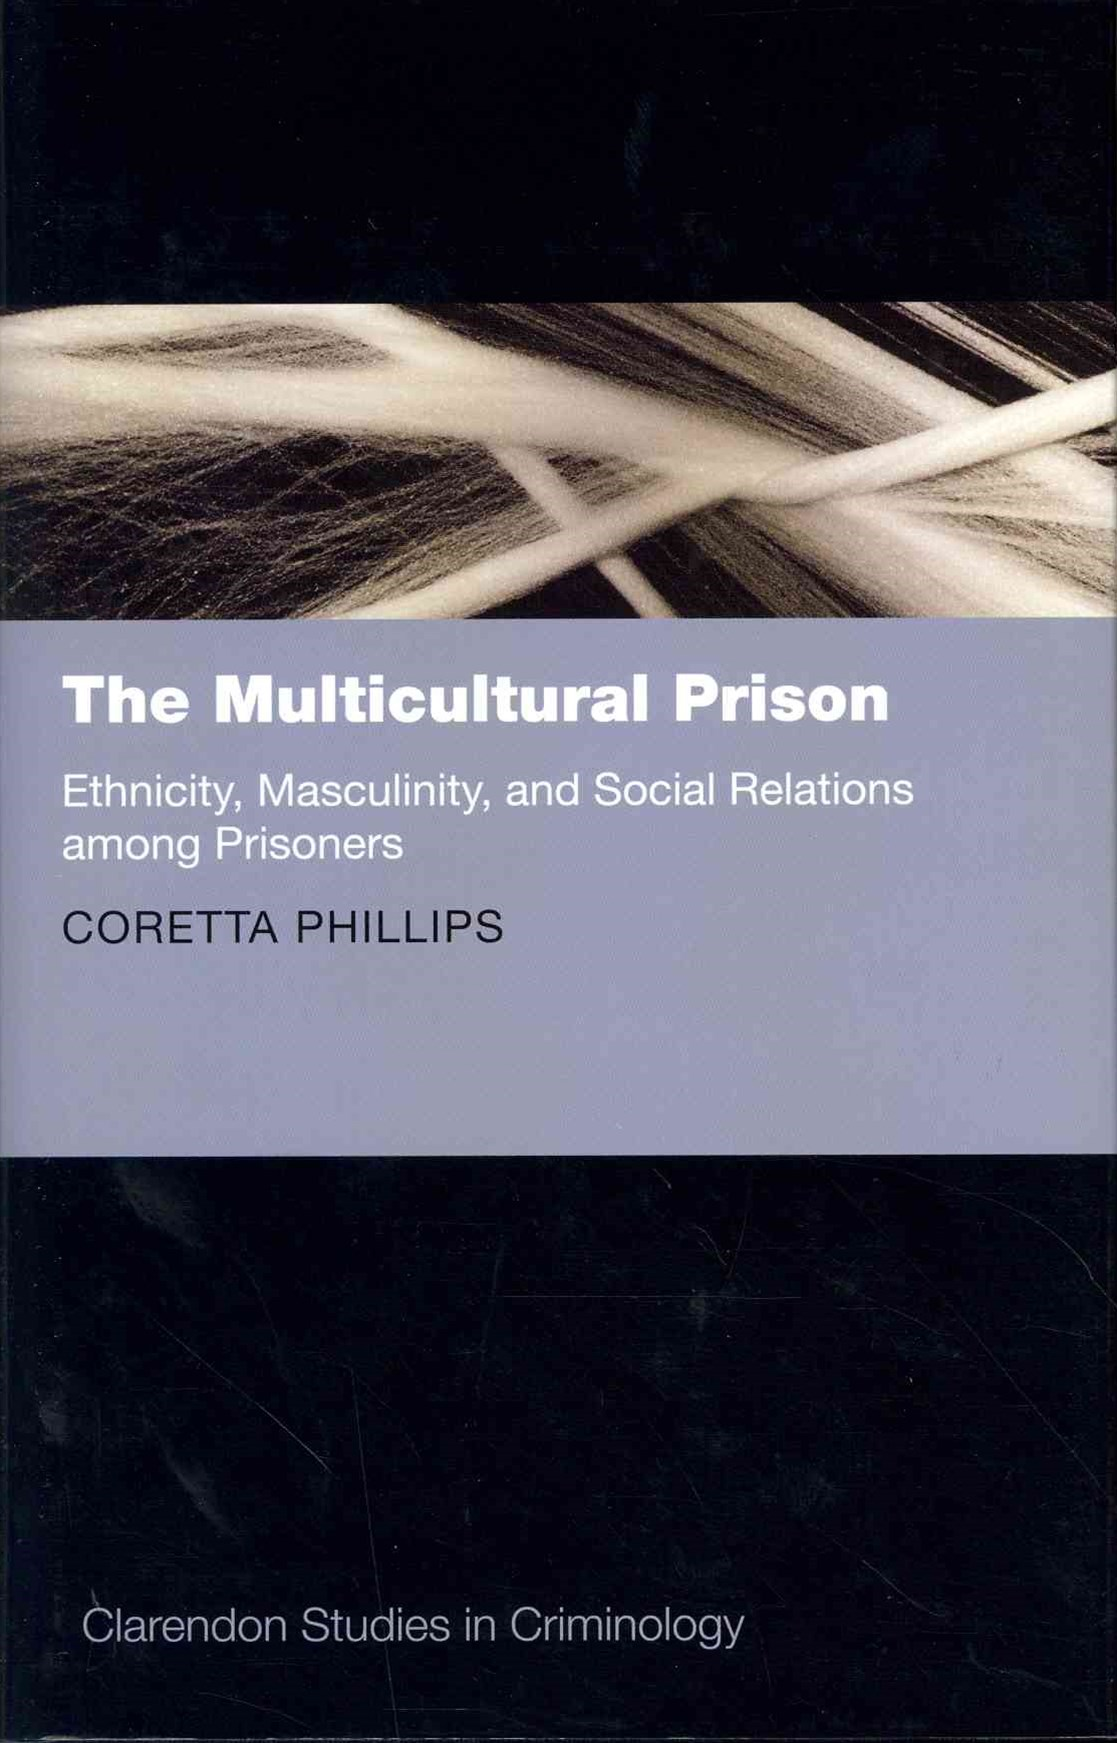 The Multicultural Prison